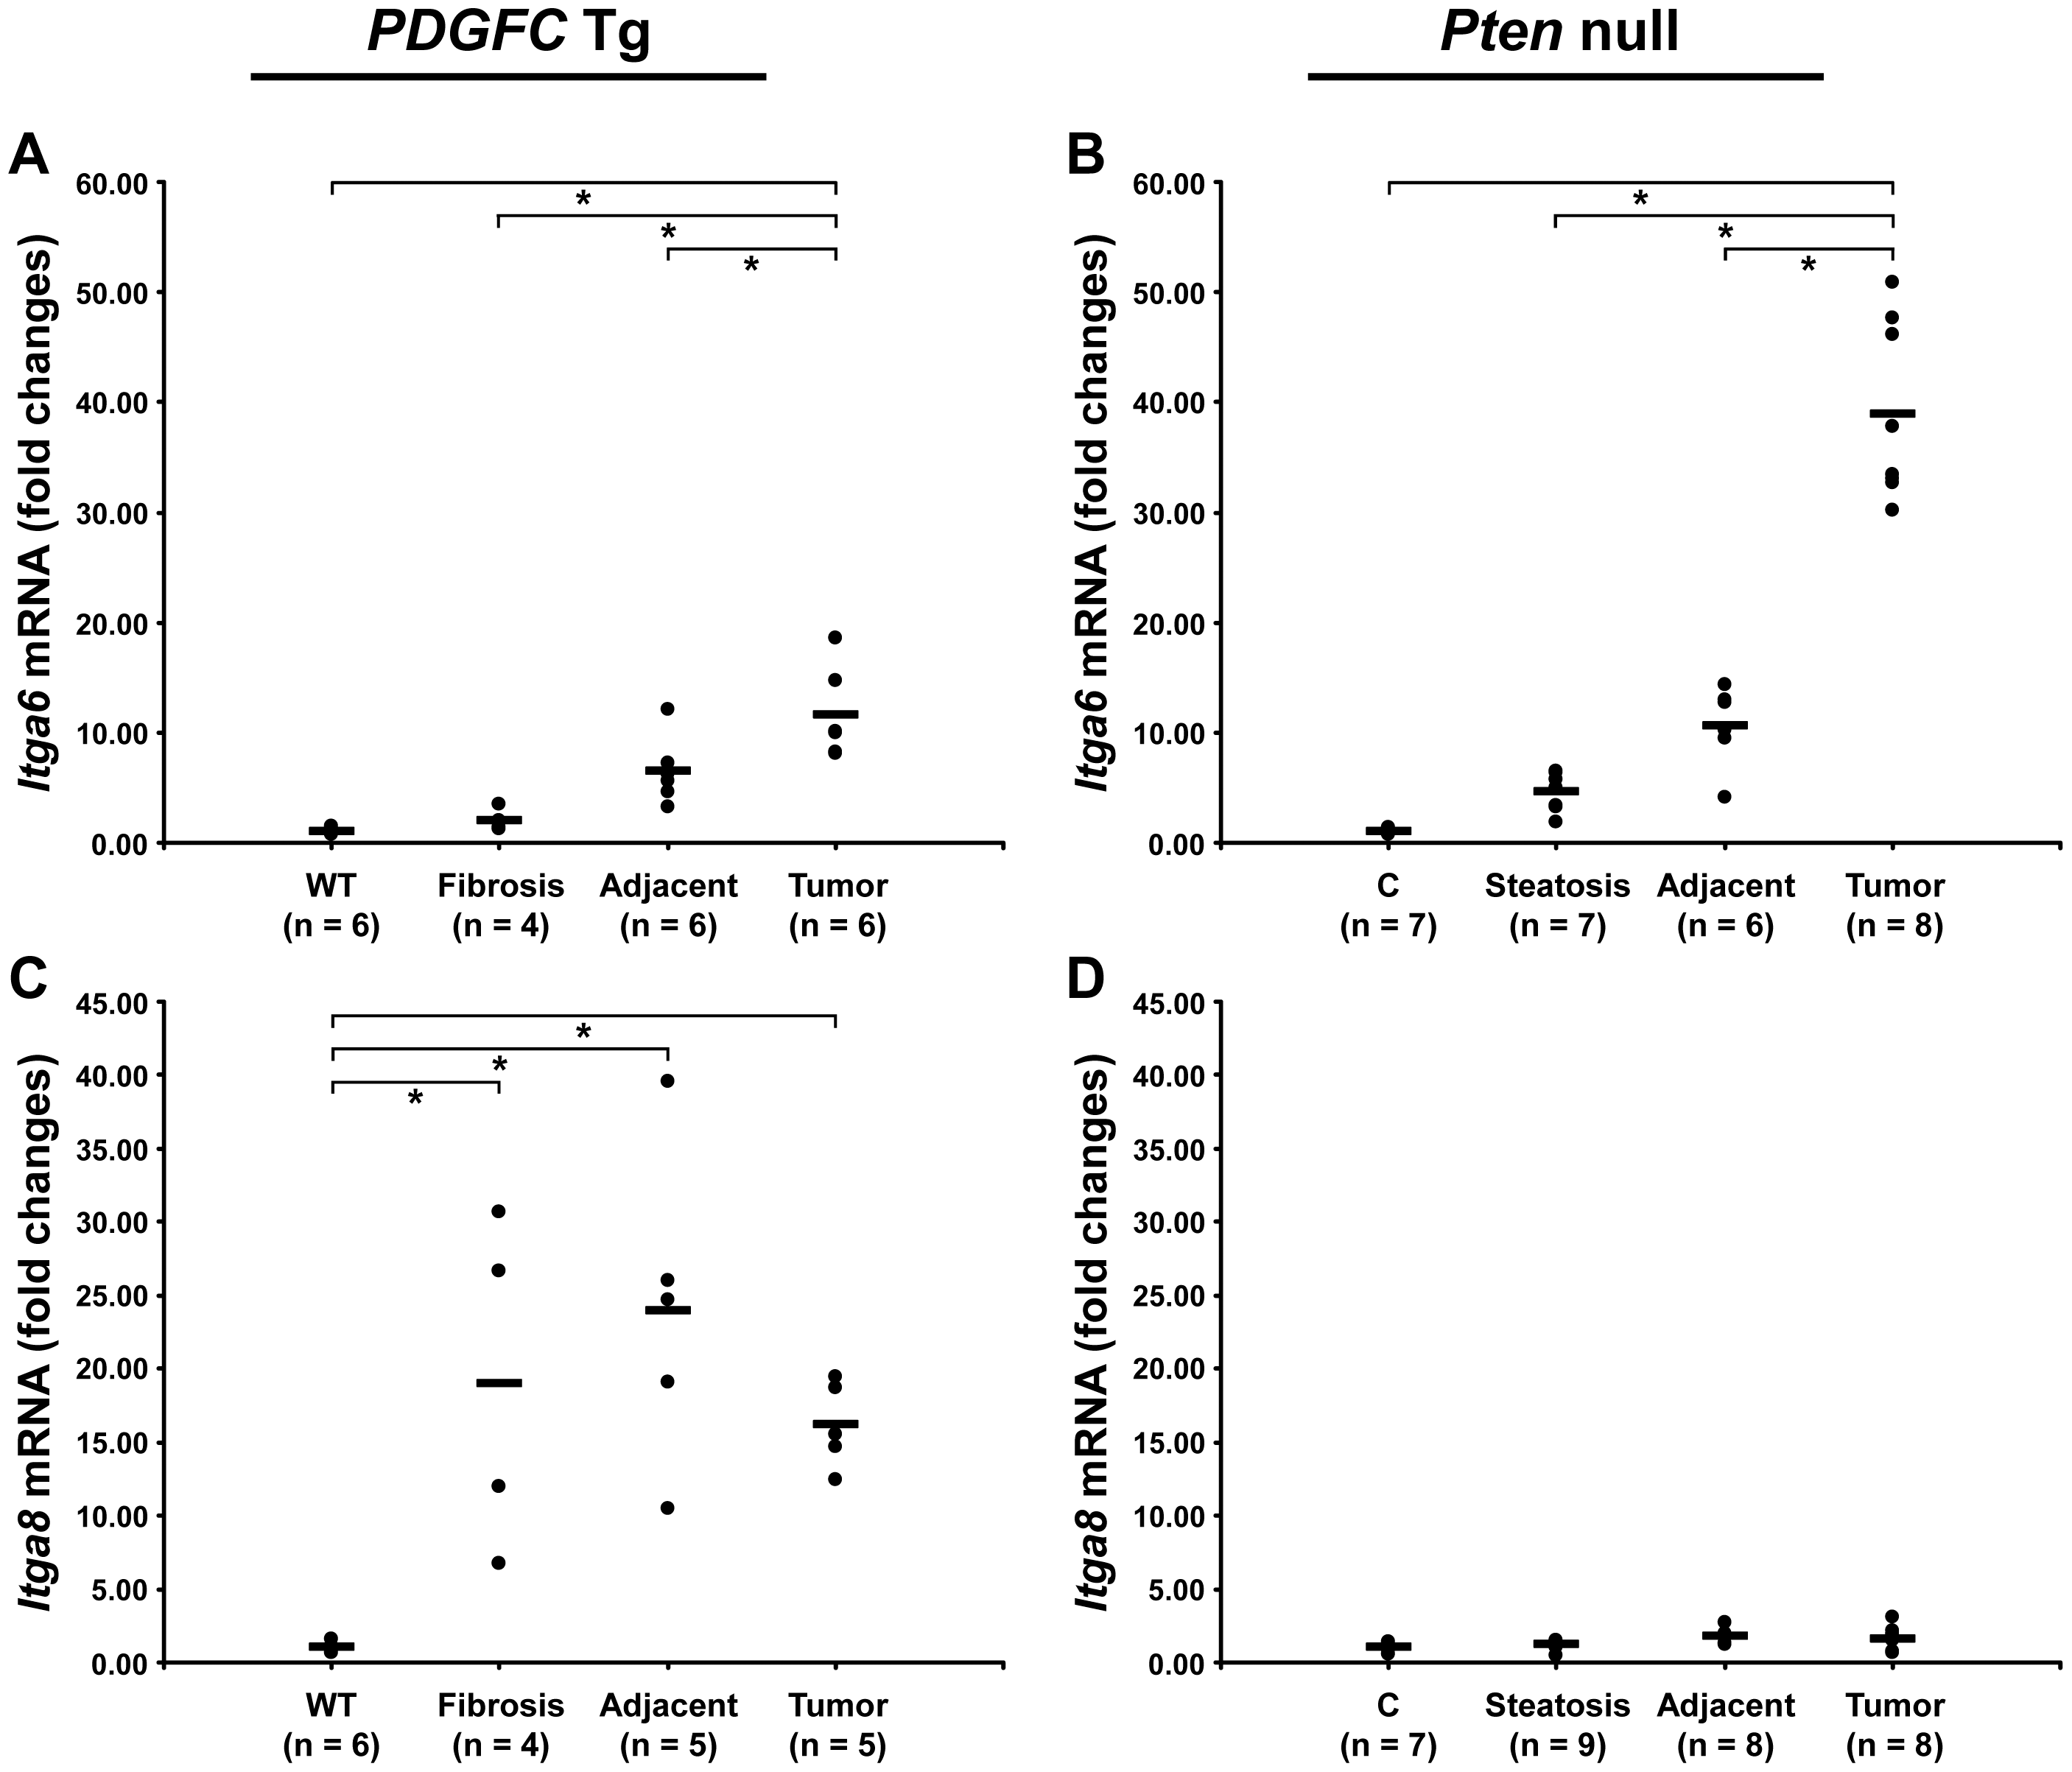 Expression of integrin α6 and α8 mRNAs upon disease progression in <i>PDGFC</i> Tg and <i>Pten</i> null liver.